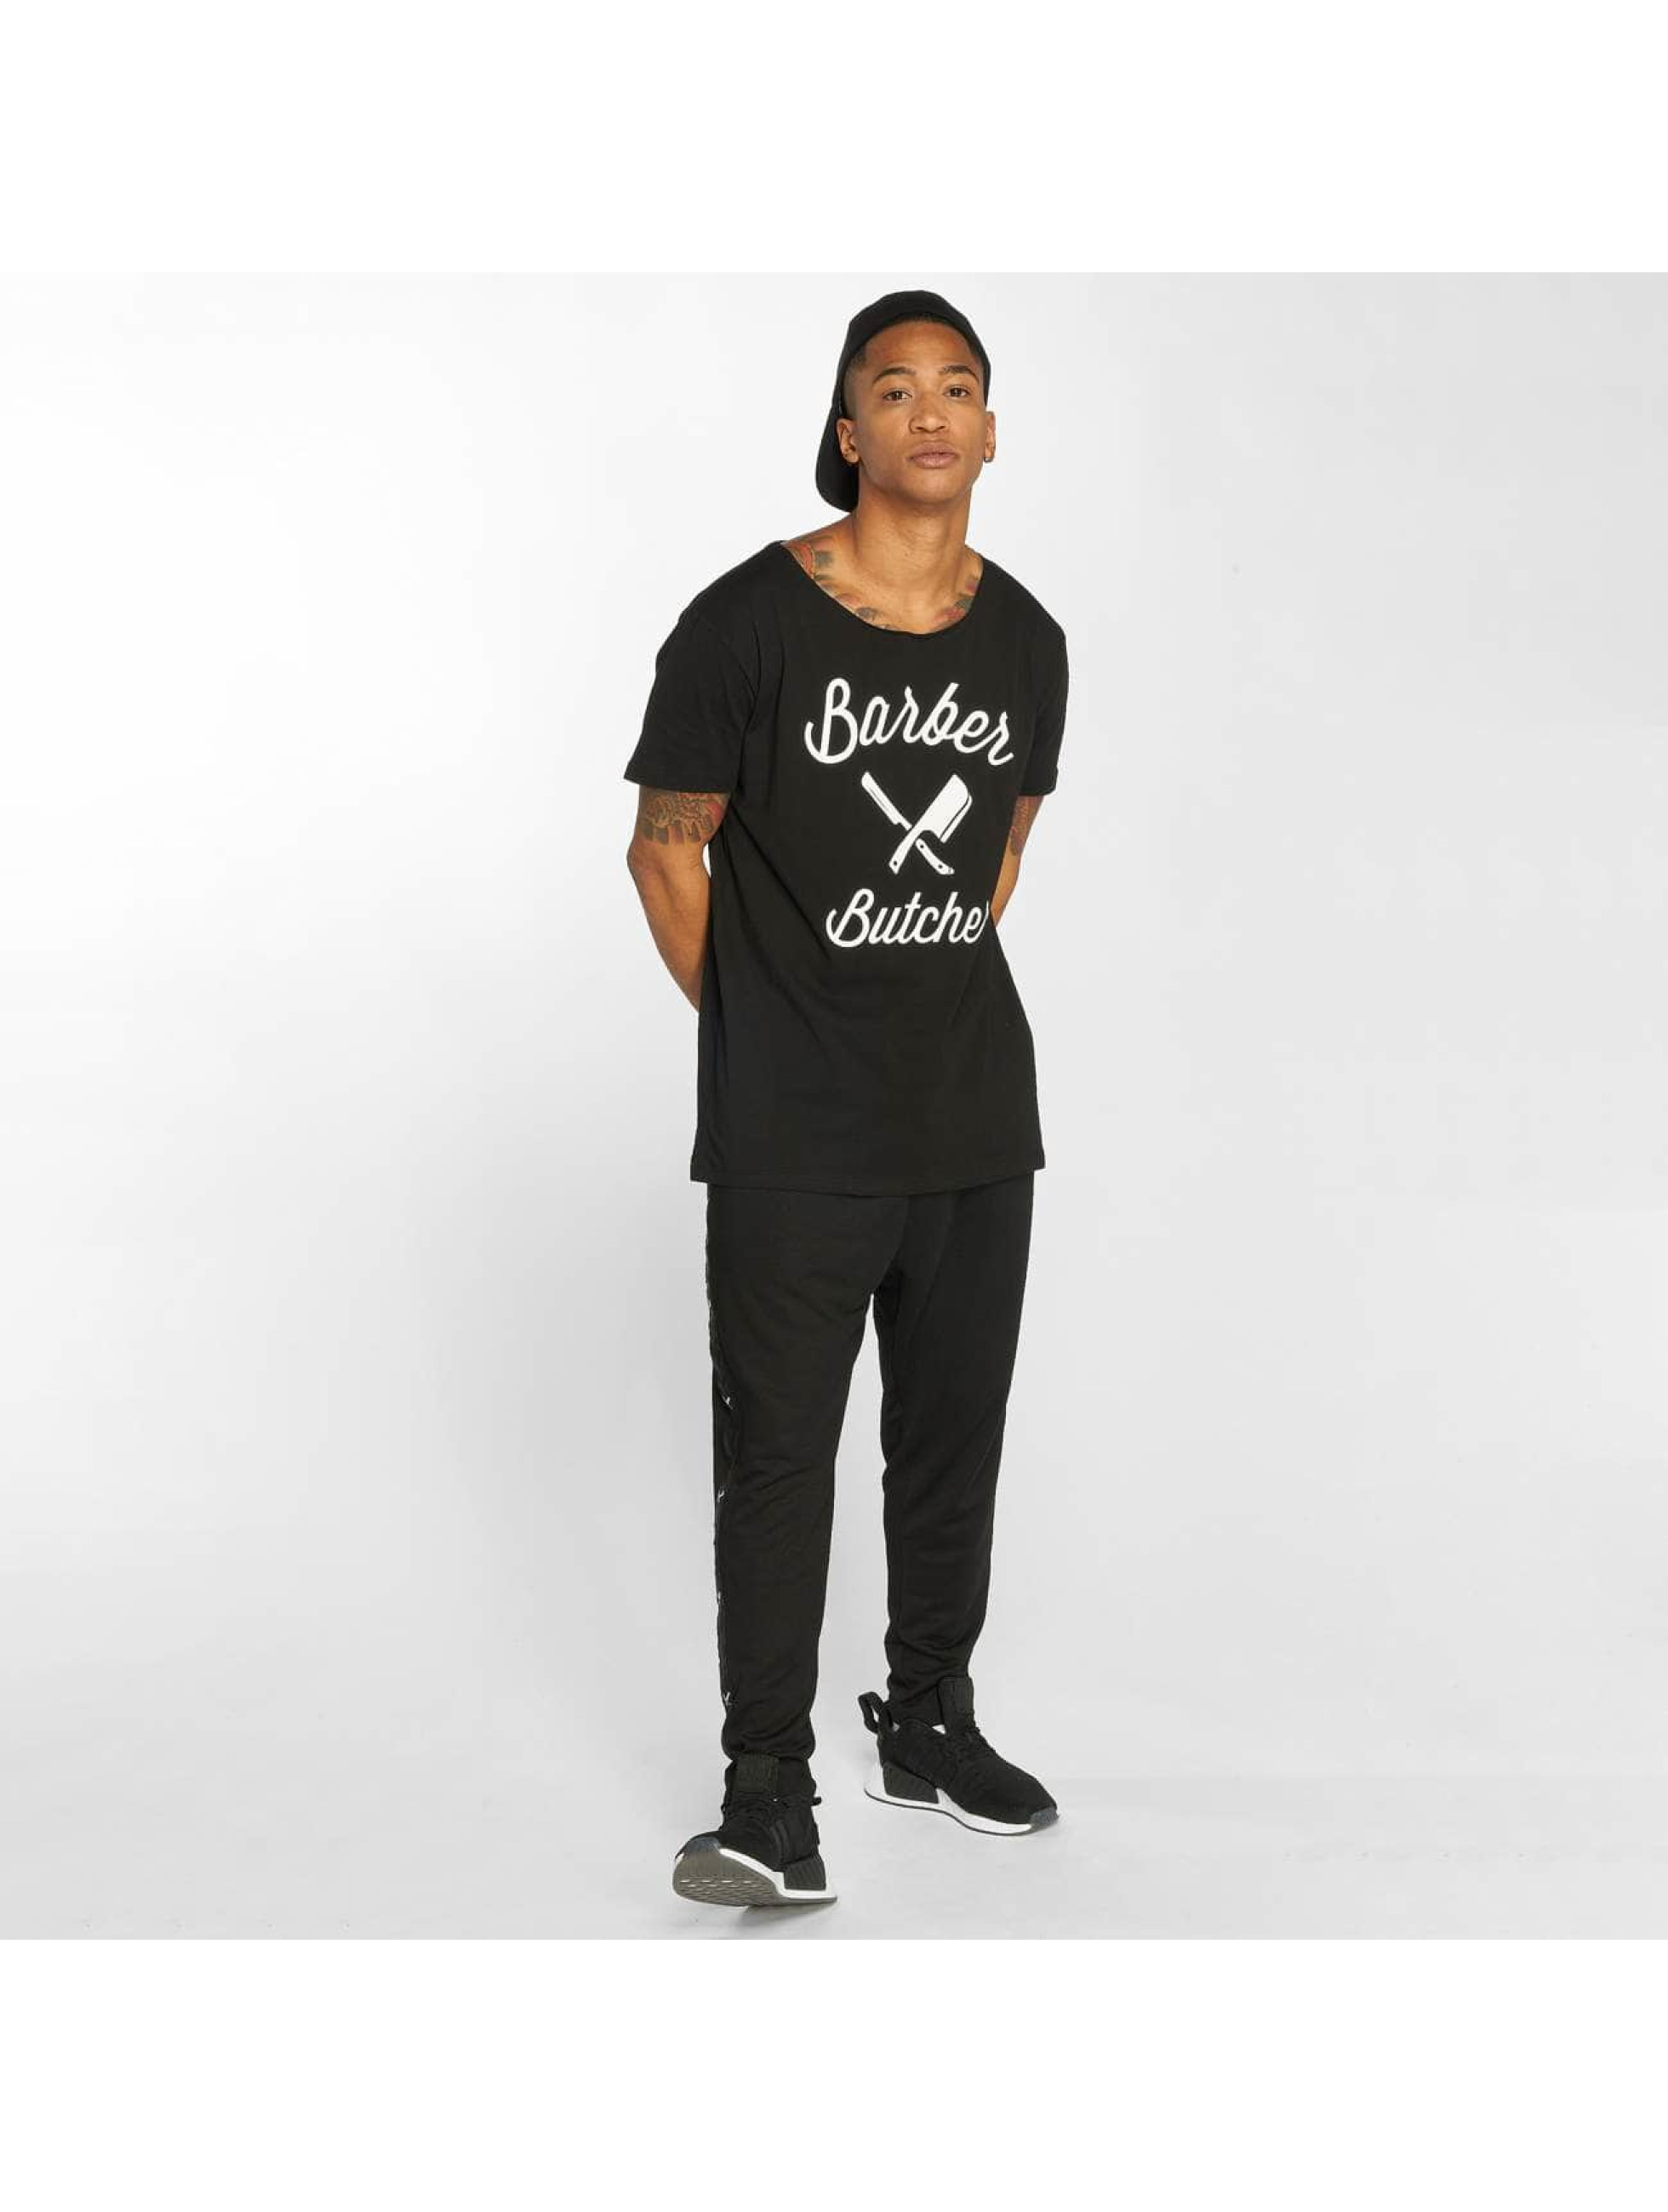 Distorted People T-shirt People BB Blades Cutted svart